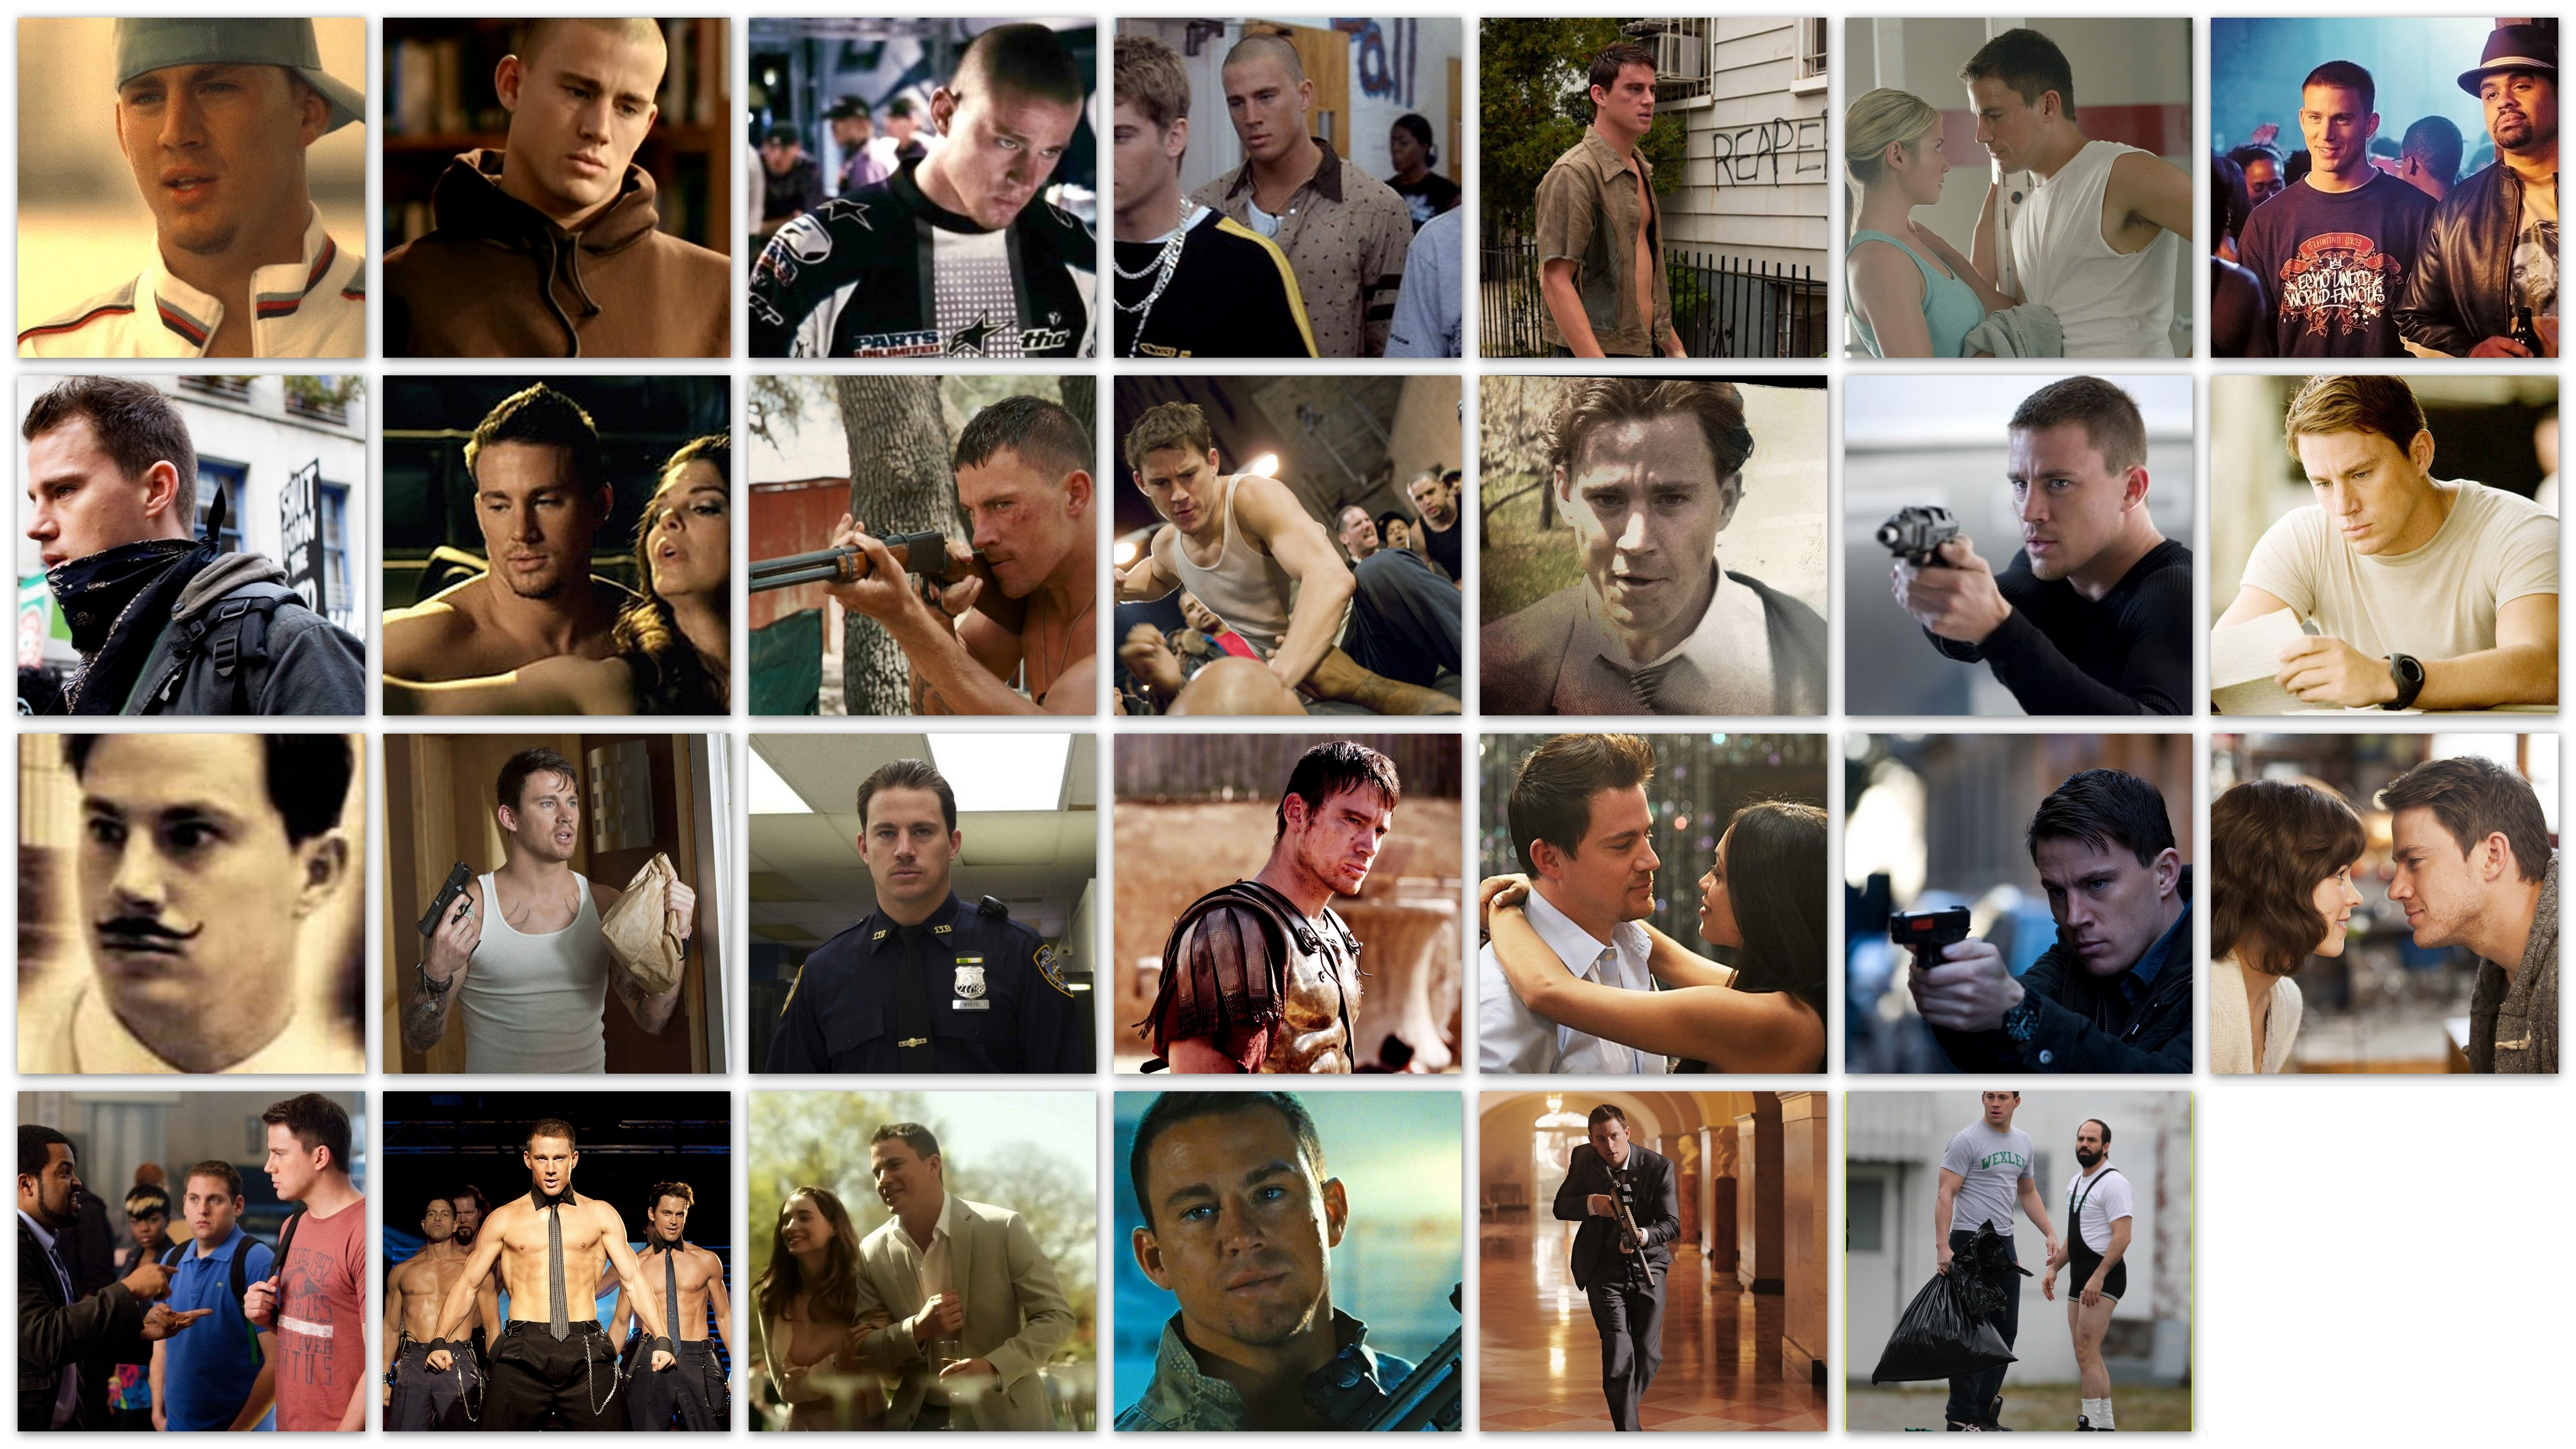 Overview of the roles and movies of Channing Tatum